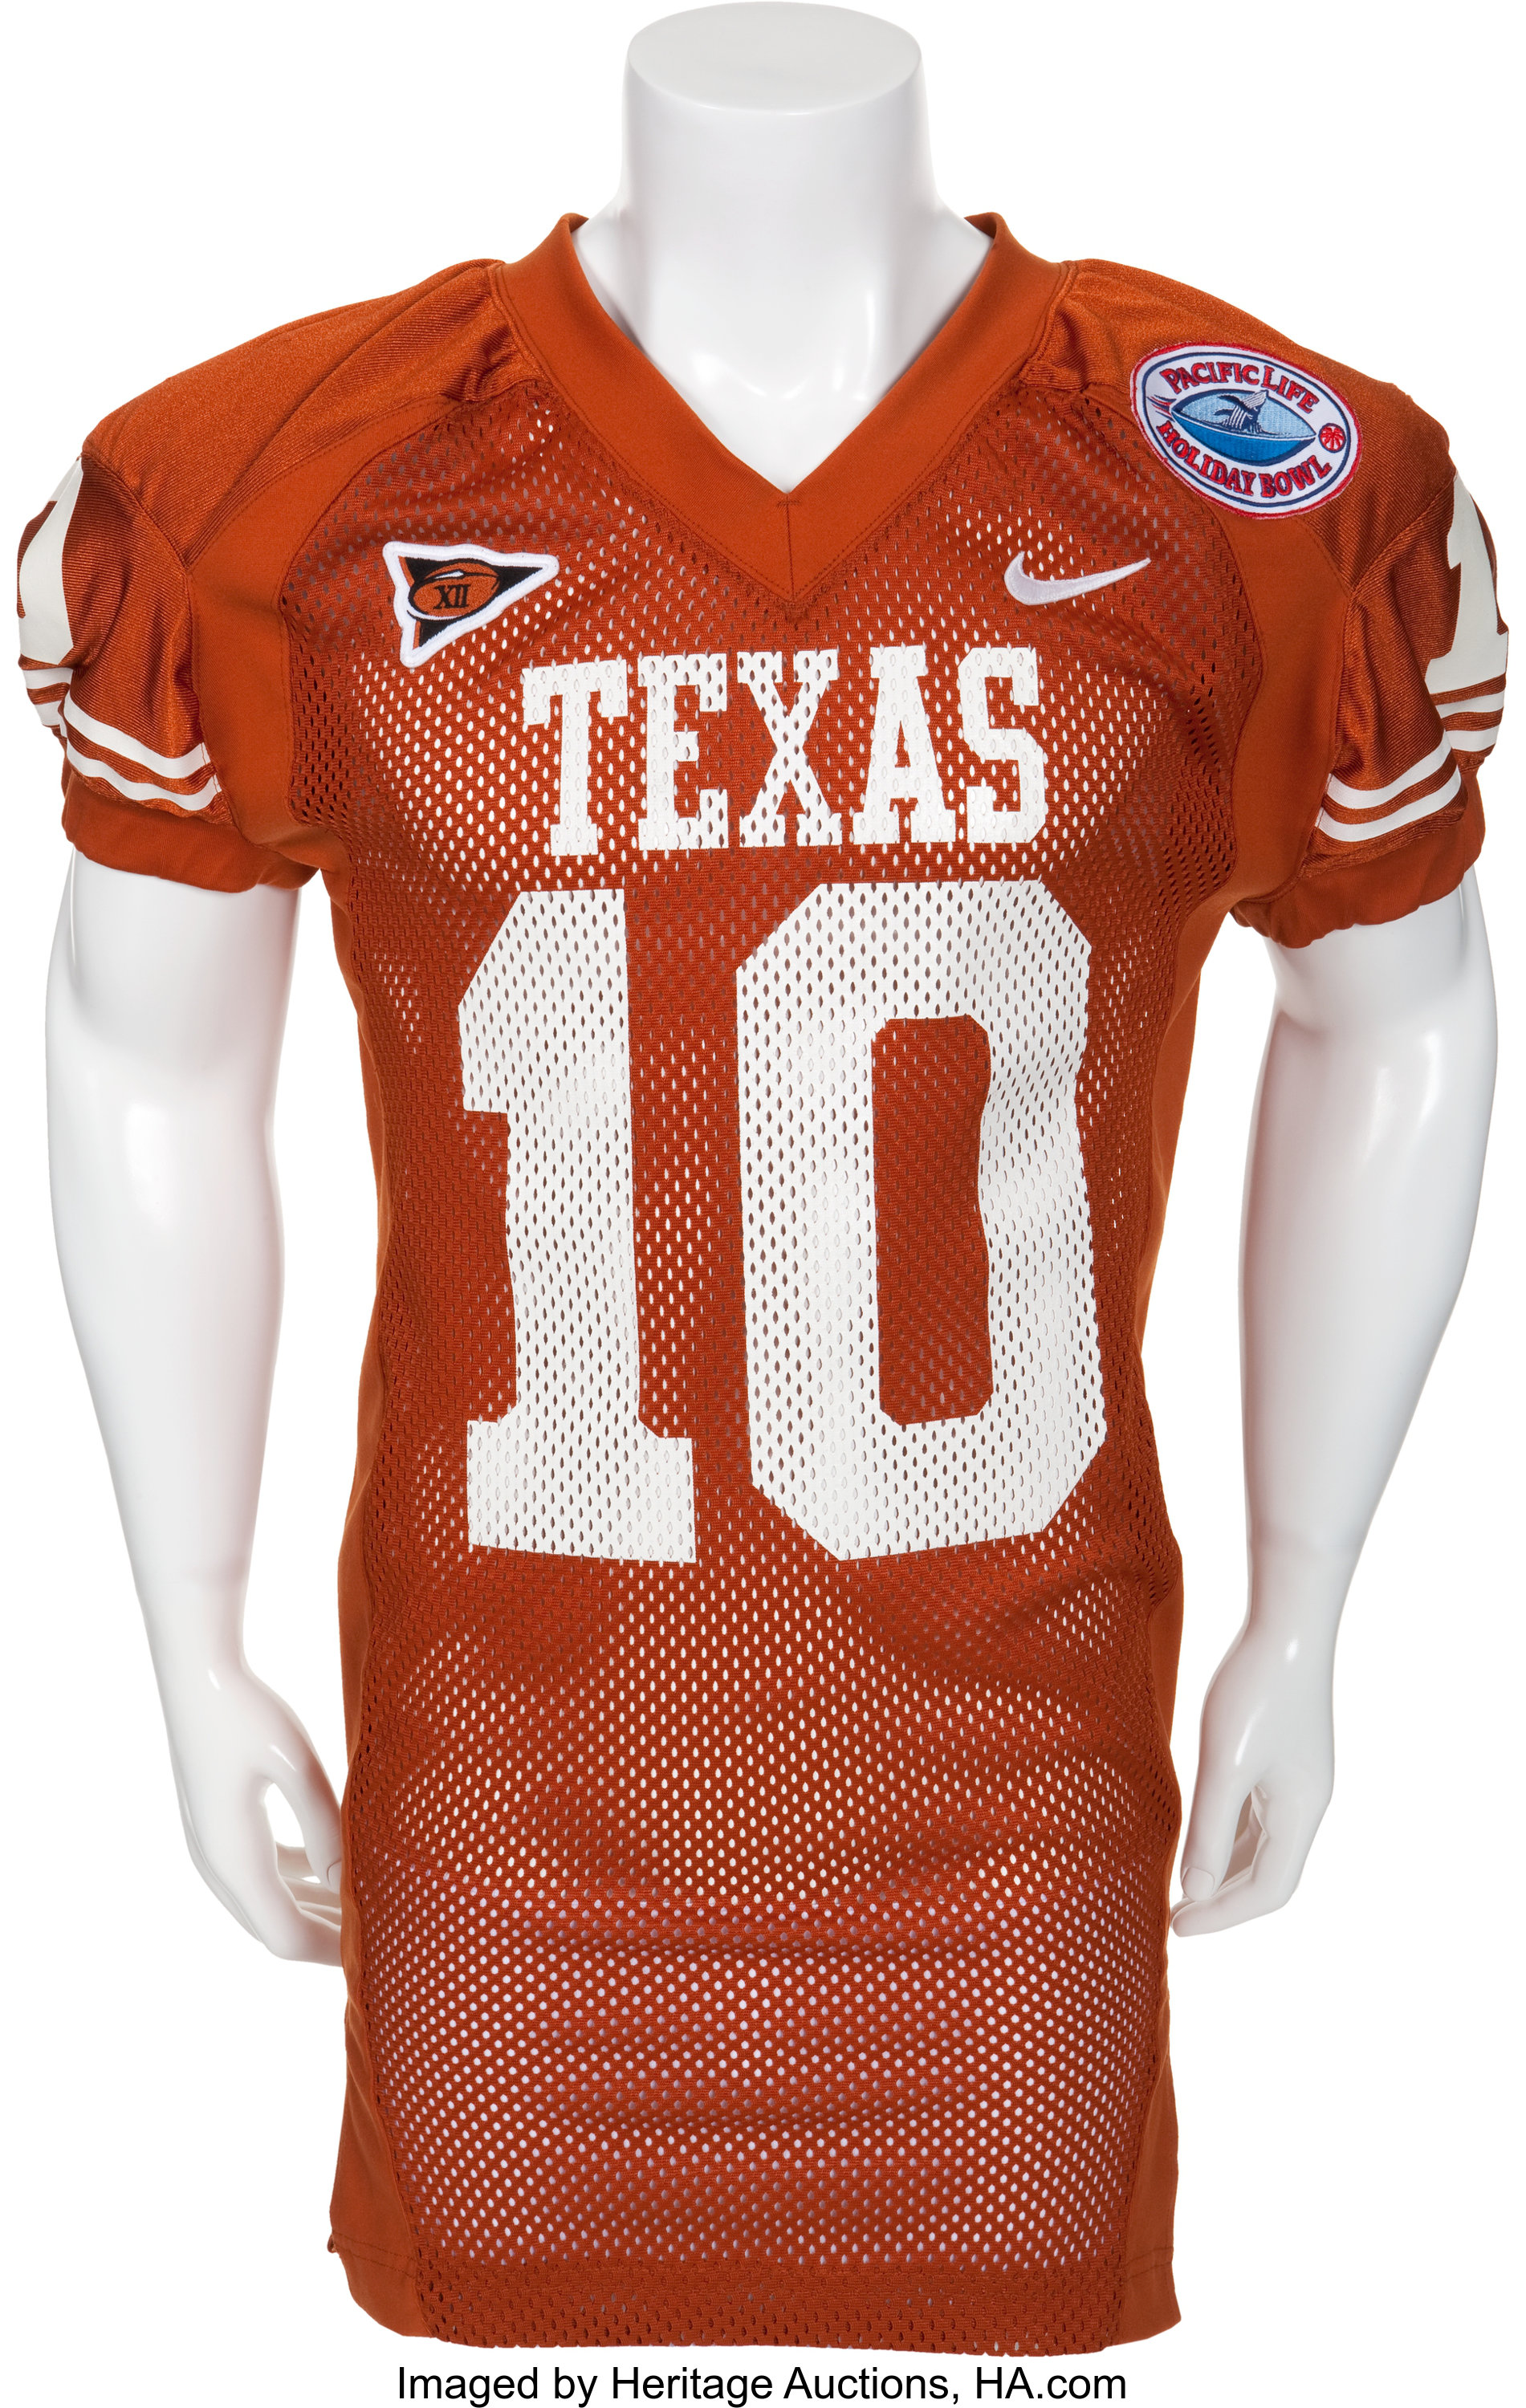 2003 Vince Young Game Worn University of Texas Longhorns Jersey ...